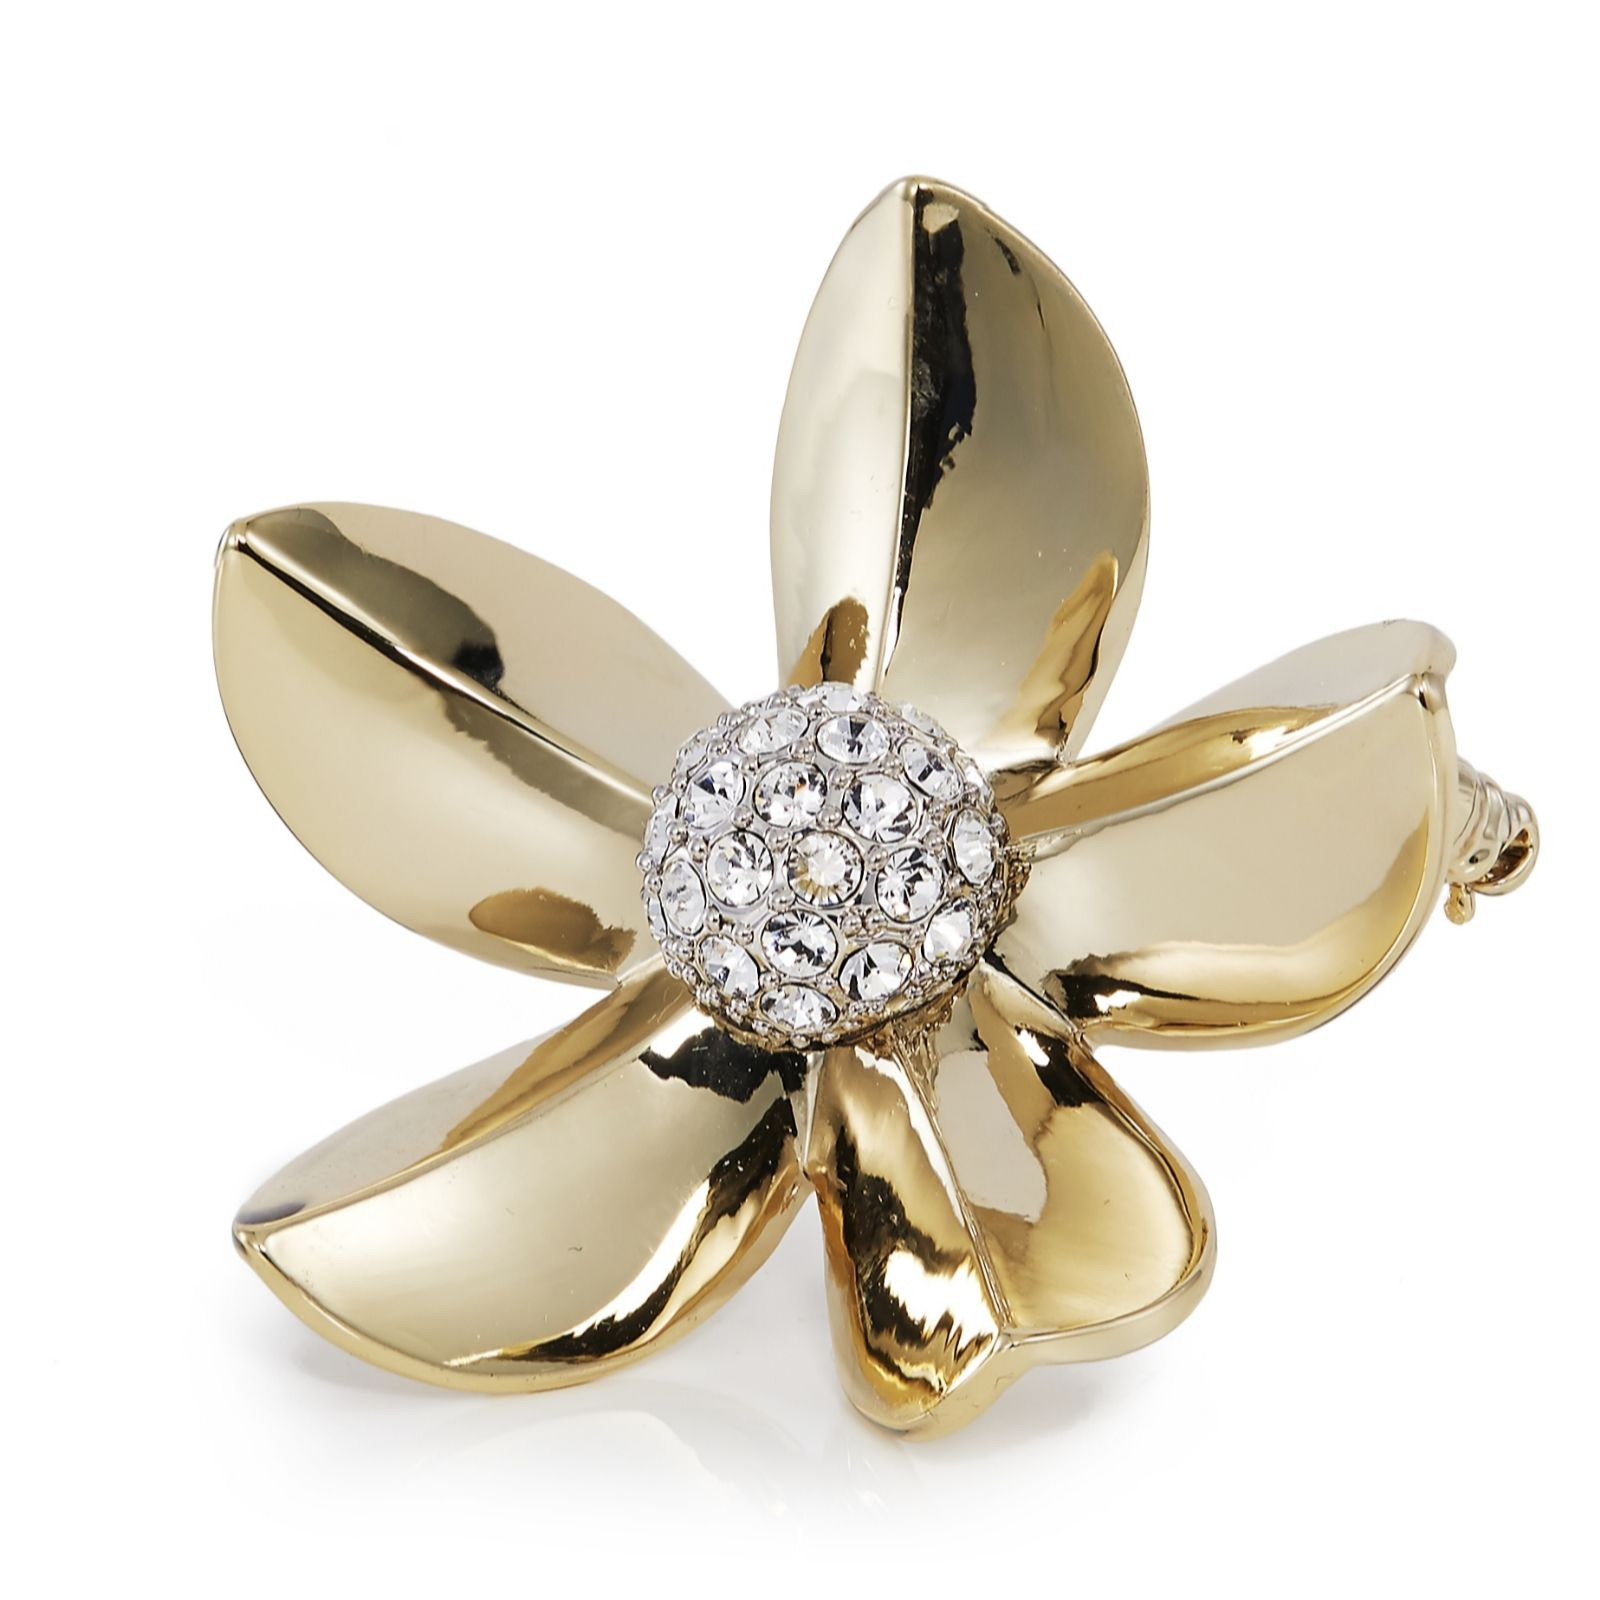 web jewelry anna dreicer ring product brooch dreicerbrooch edwardian jewellery diamond lin co